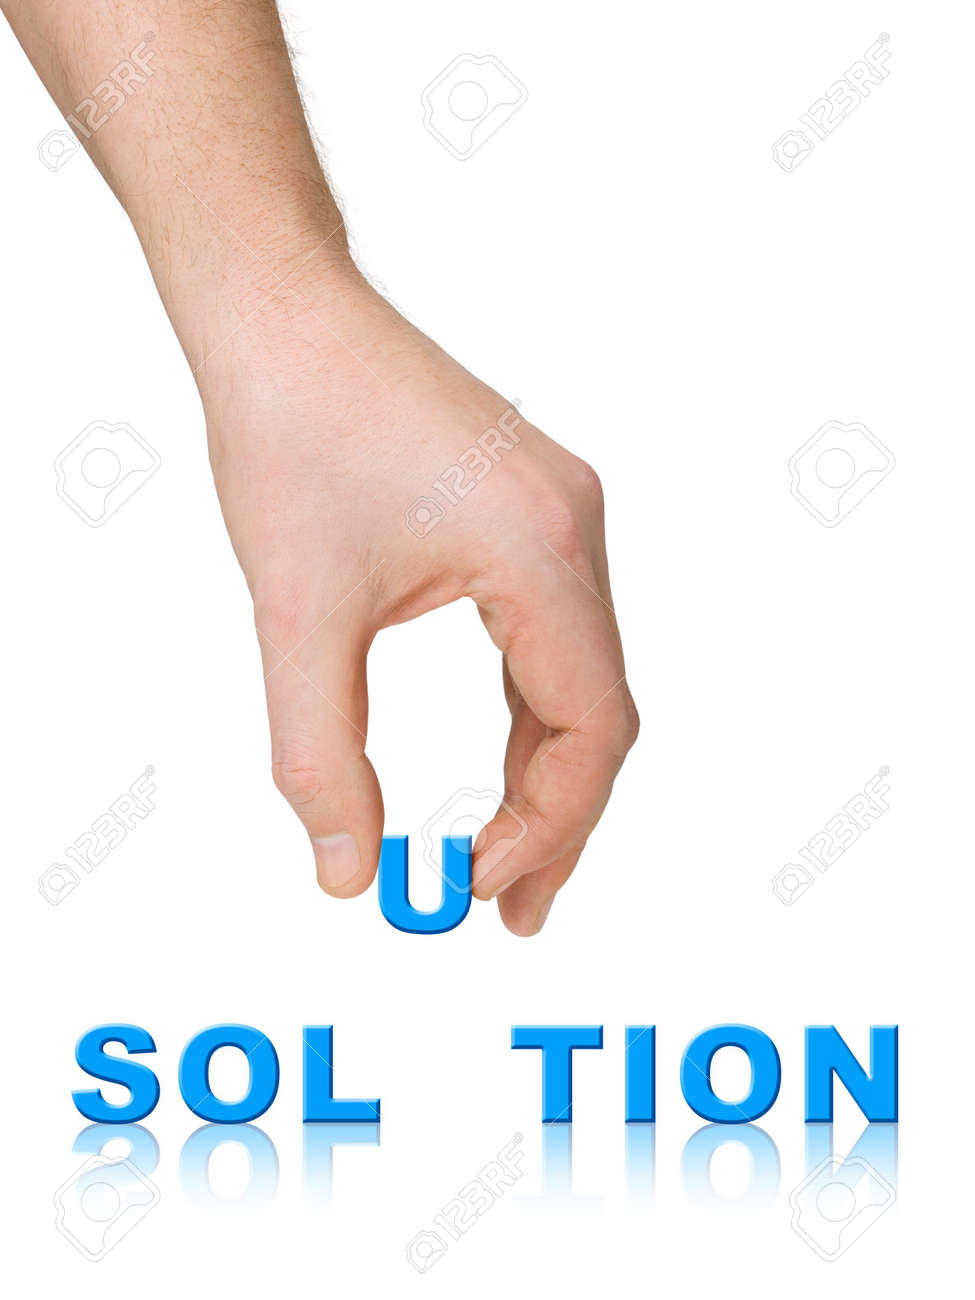 Hand and word Solution, business concept, isolated on white background Stock Photo - 2592094